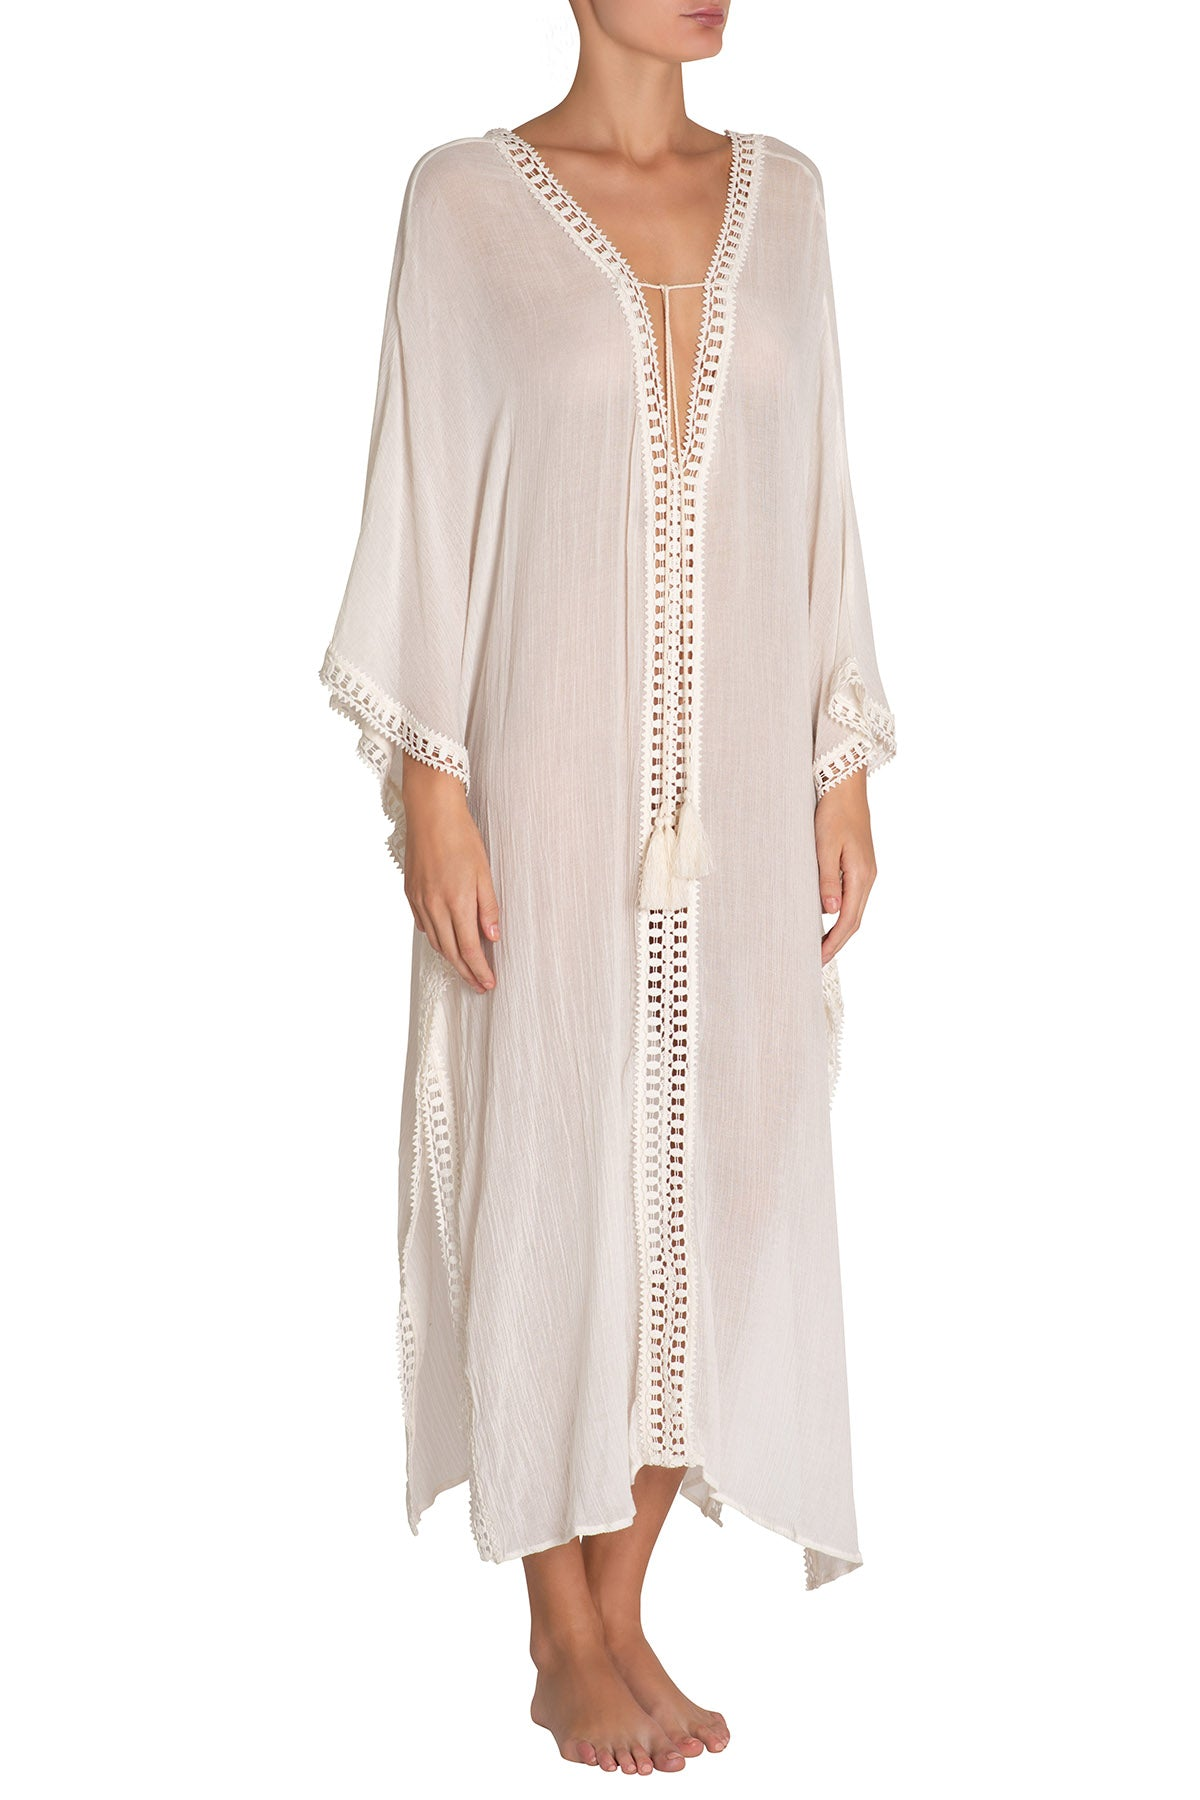 Eberjey Summer Of Love Ilda Cover Up- Cloud